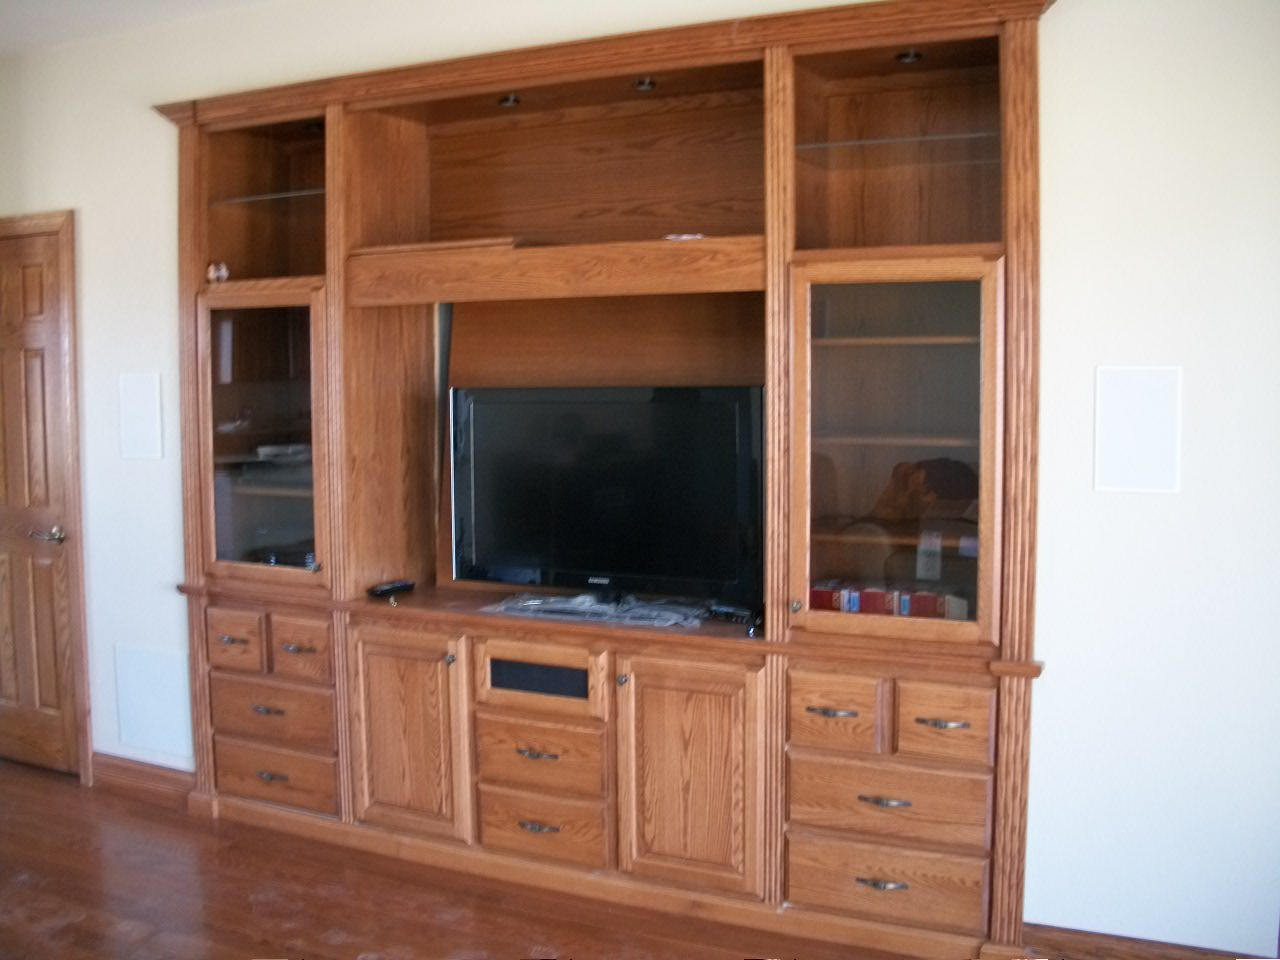 Wood built in home entertainment center plans pdf plans Design plans for entertainment center